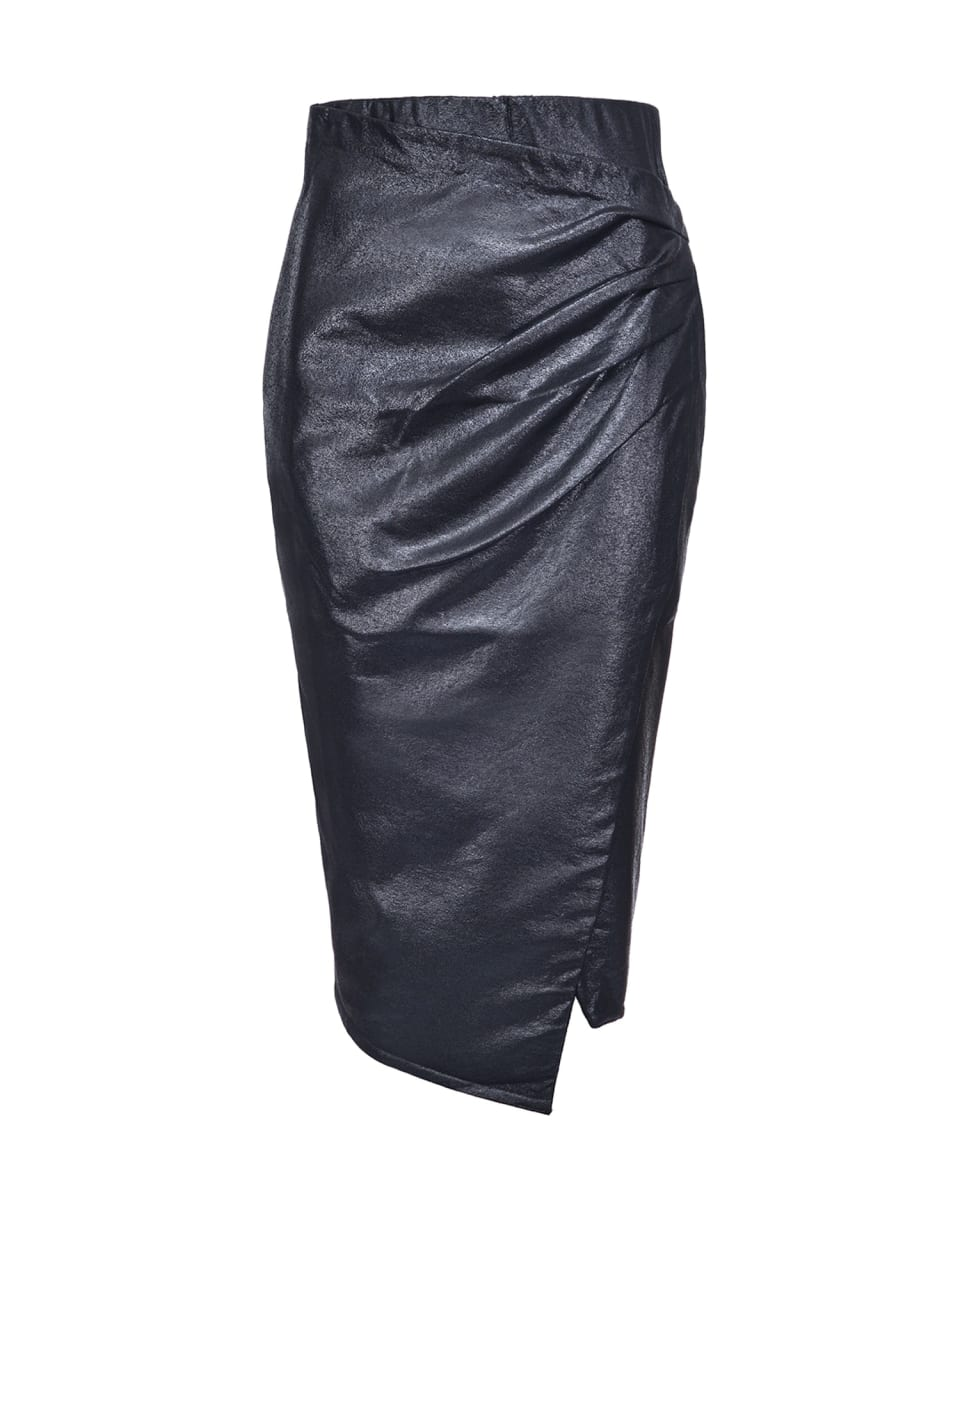 Leather-look viscose midi-length skirt - Pinko